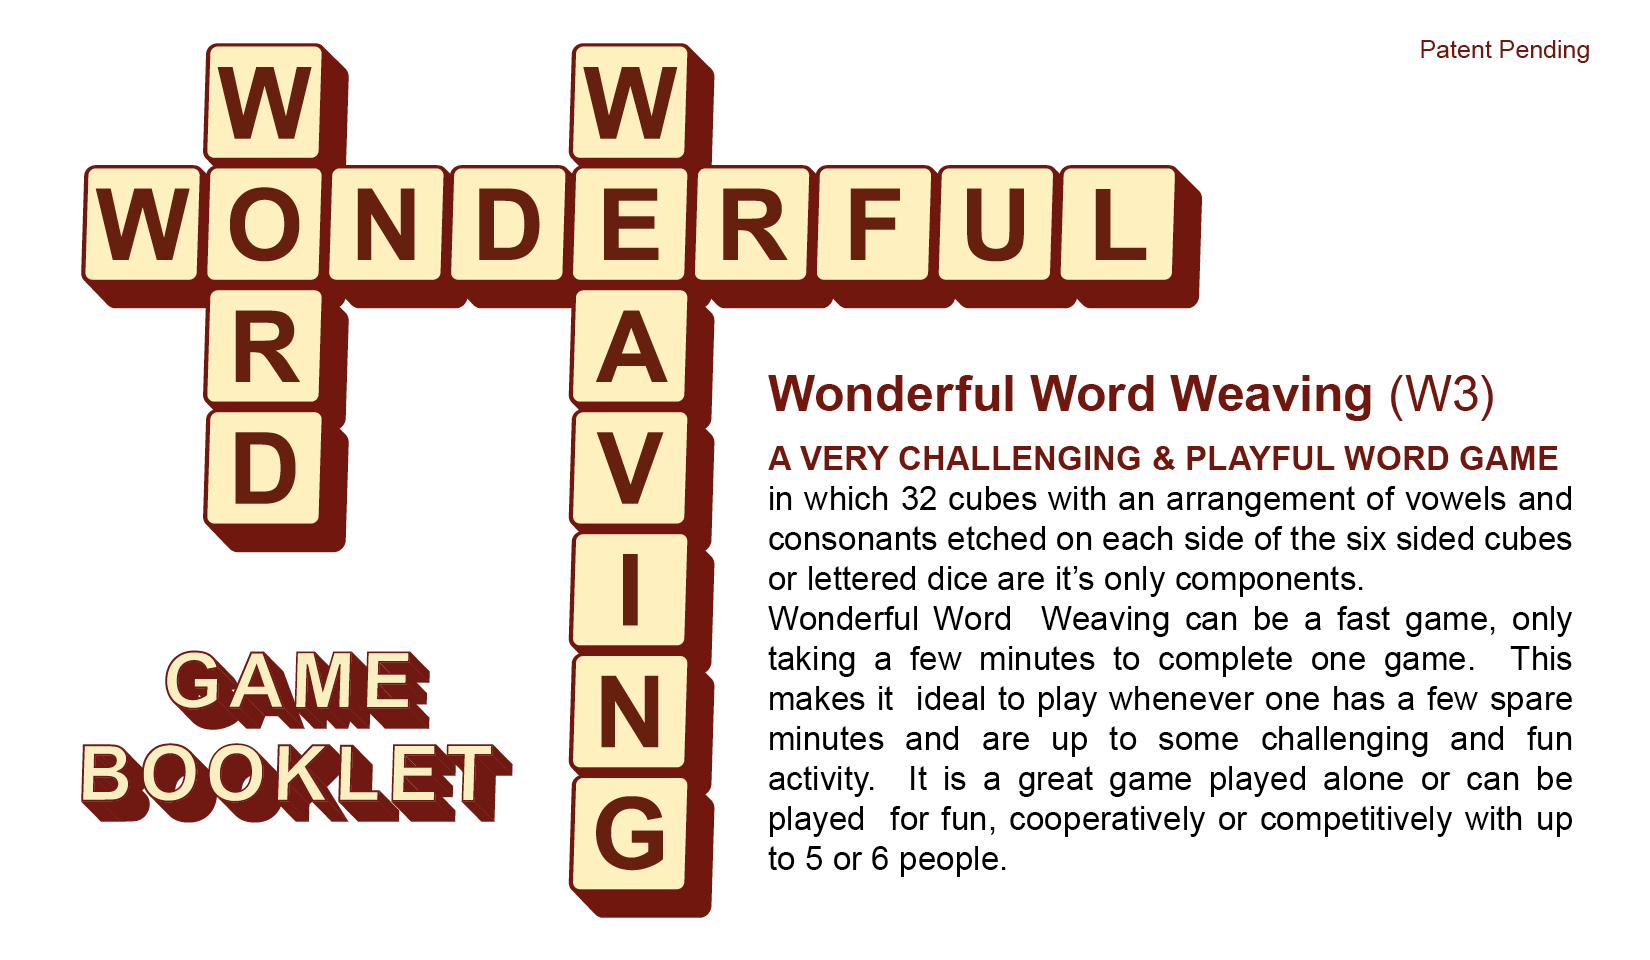 Wonderful Word Weaving